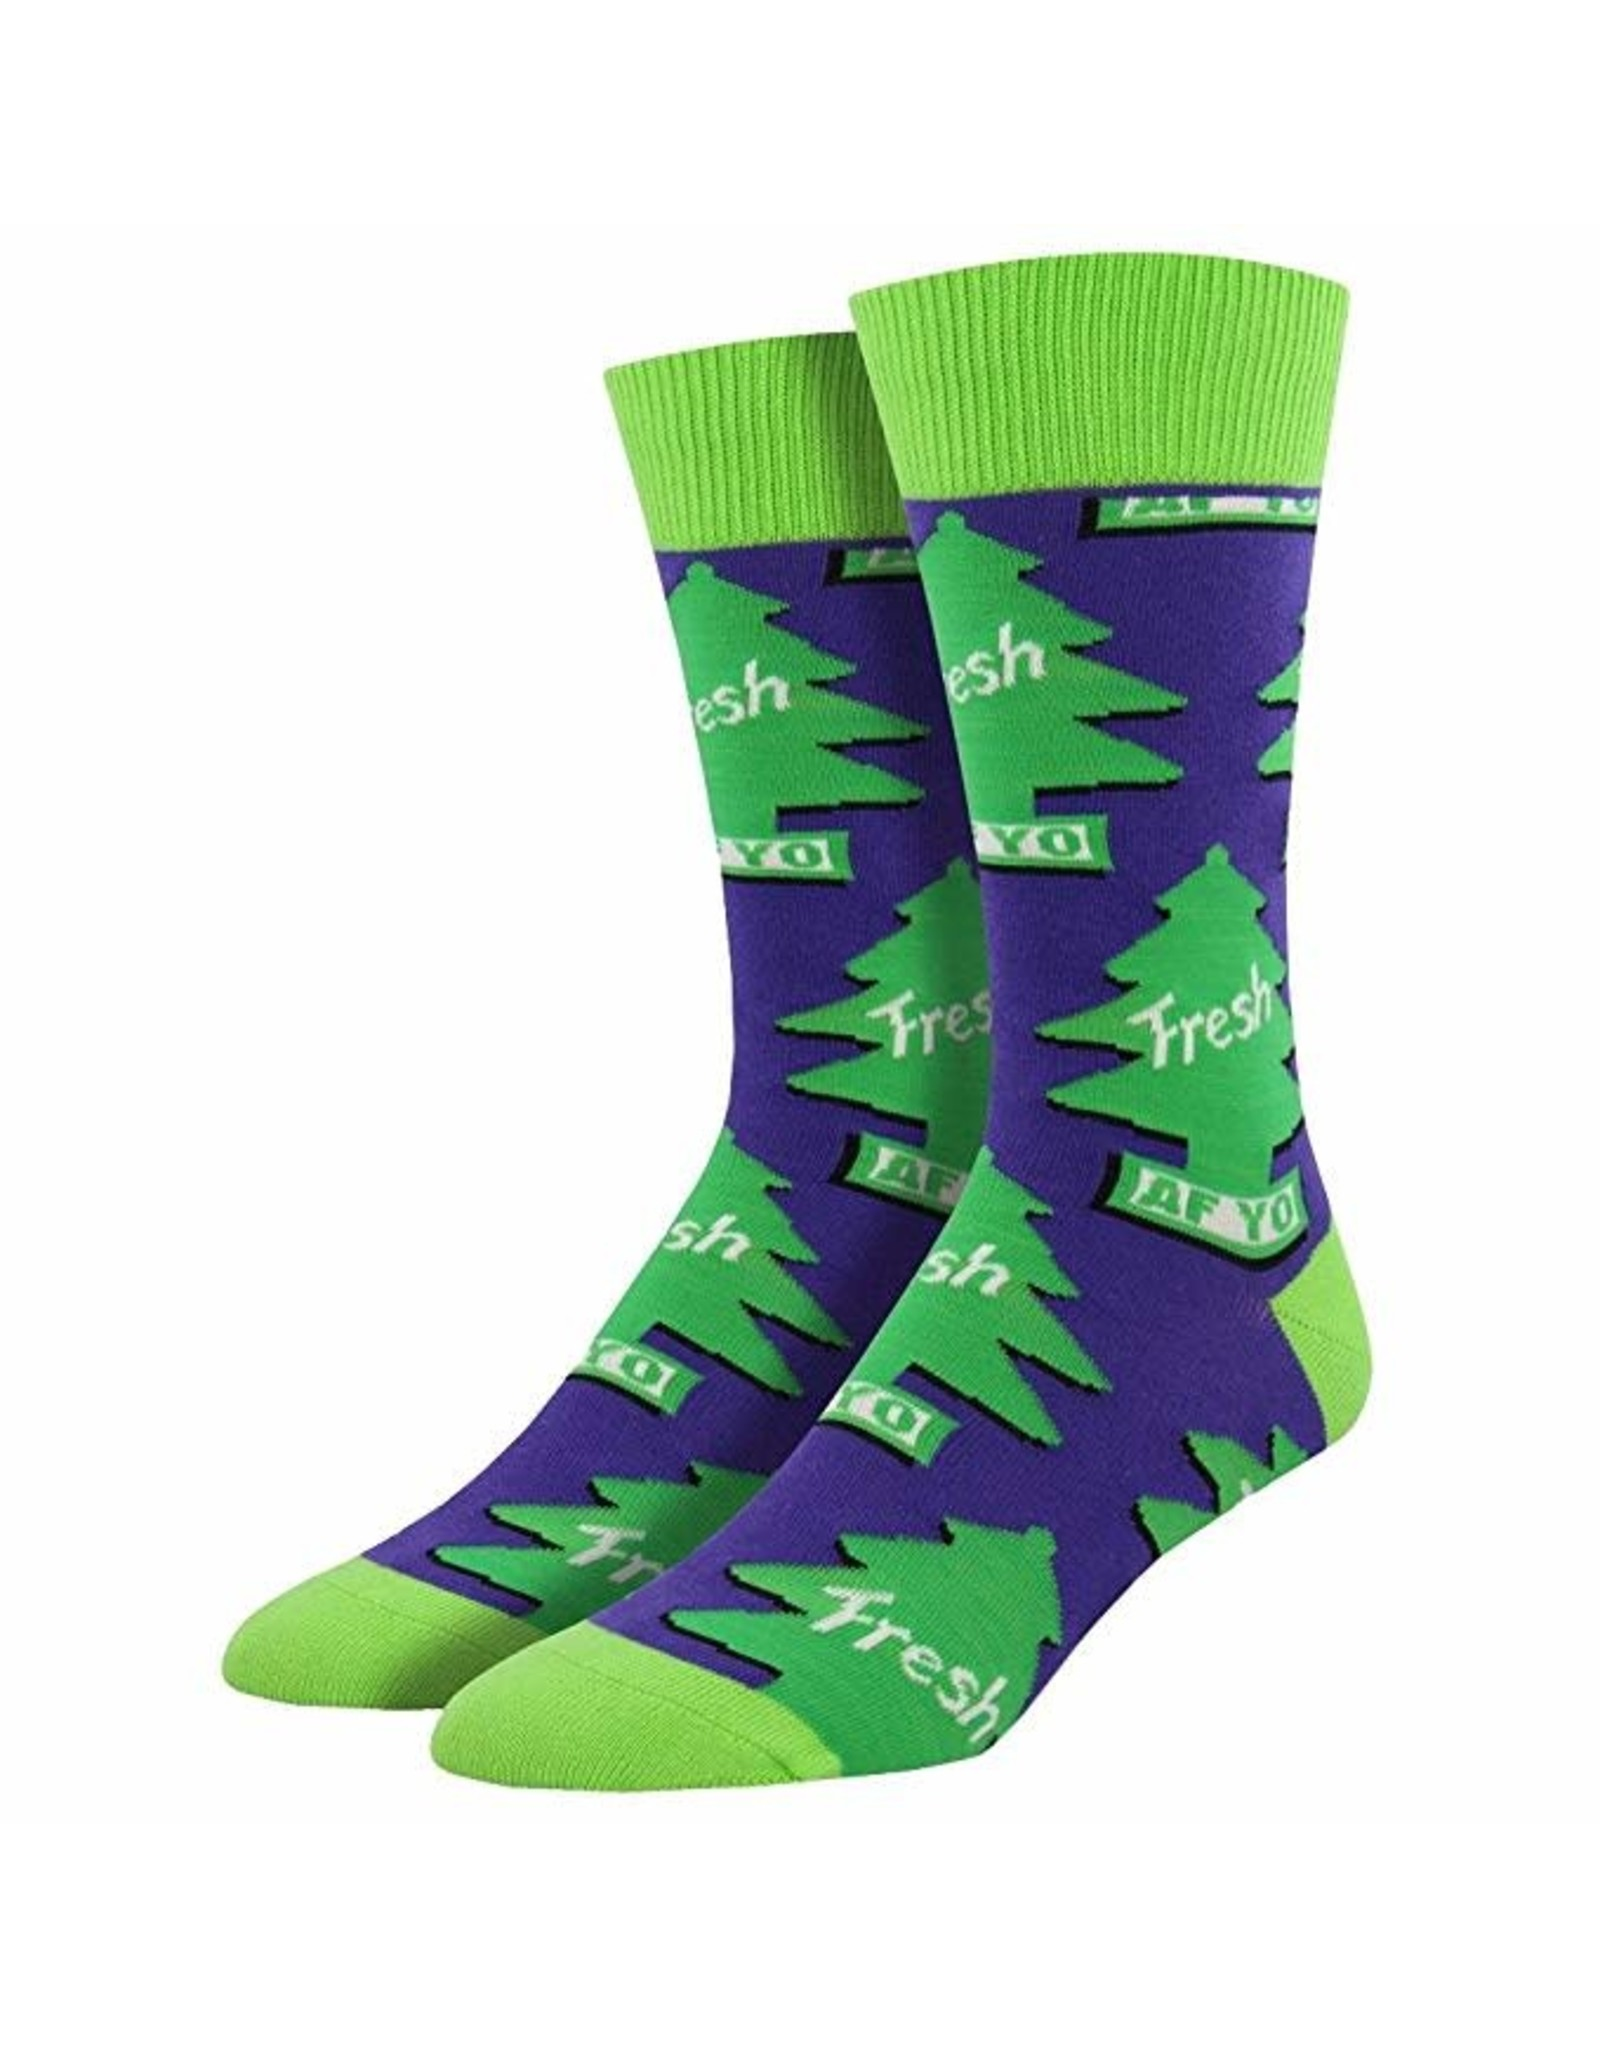 Socks (Mens)  - Freshen Up